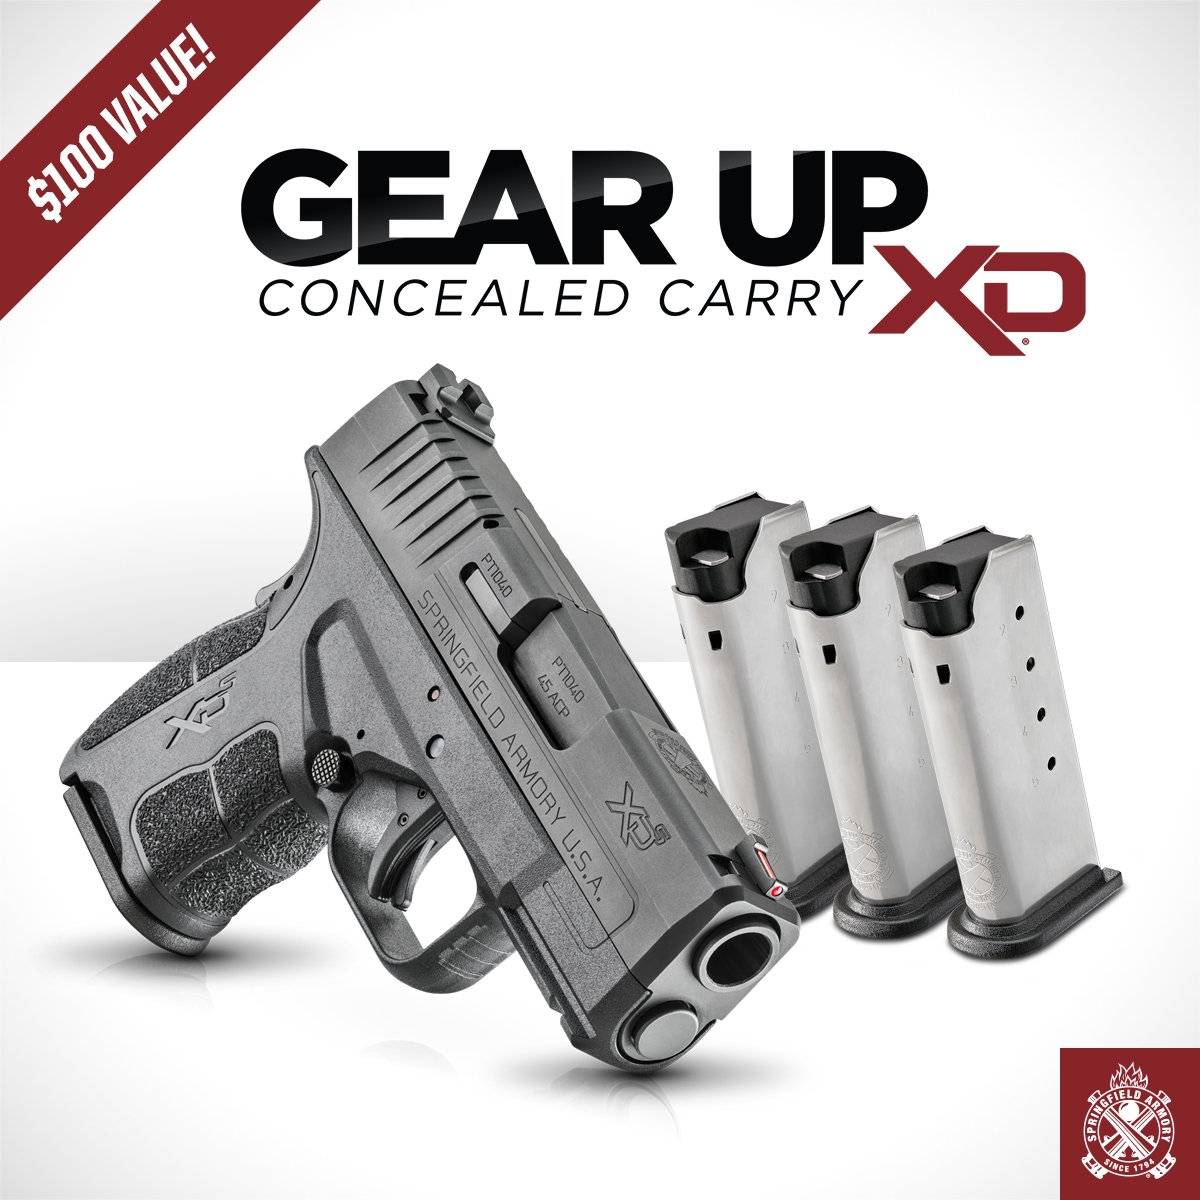 Springfield Armory Announces Their Latest Gear Up Pacakage: Gear Up: Concealed Carry XD